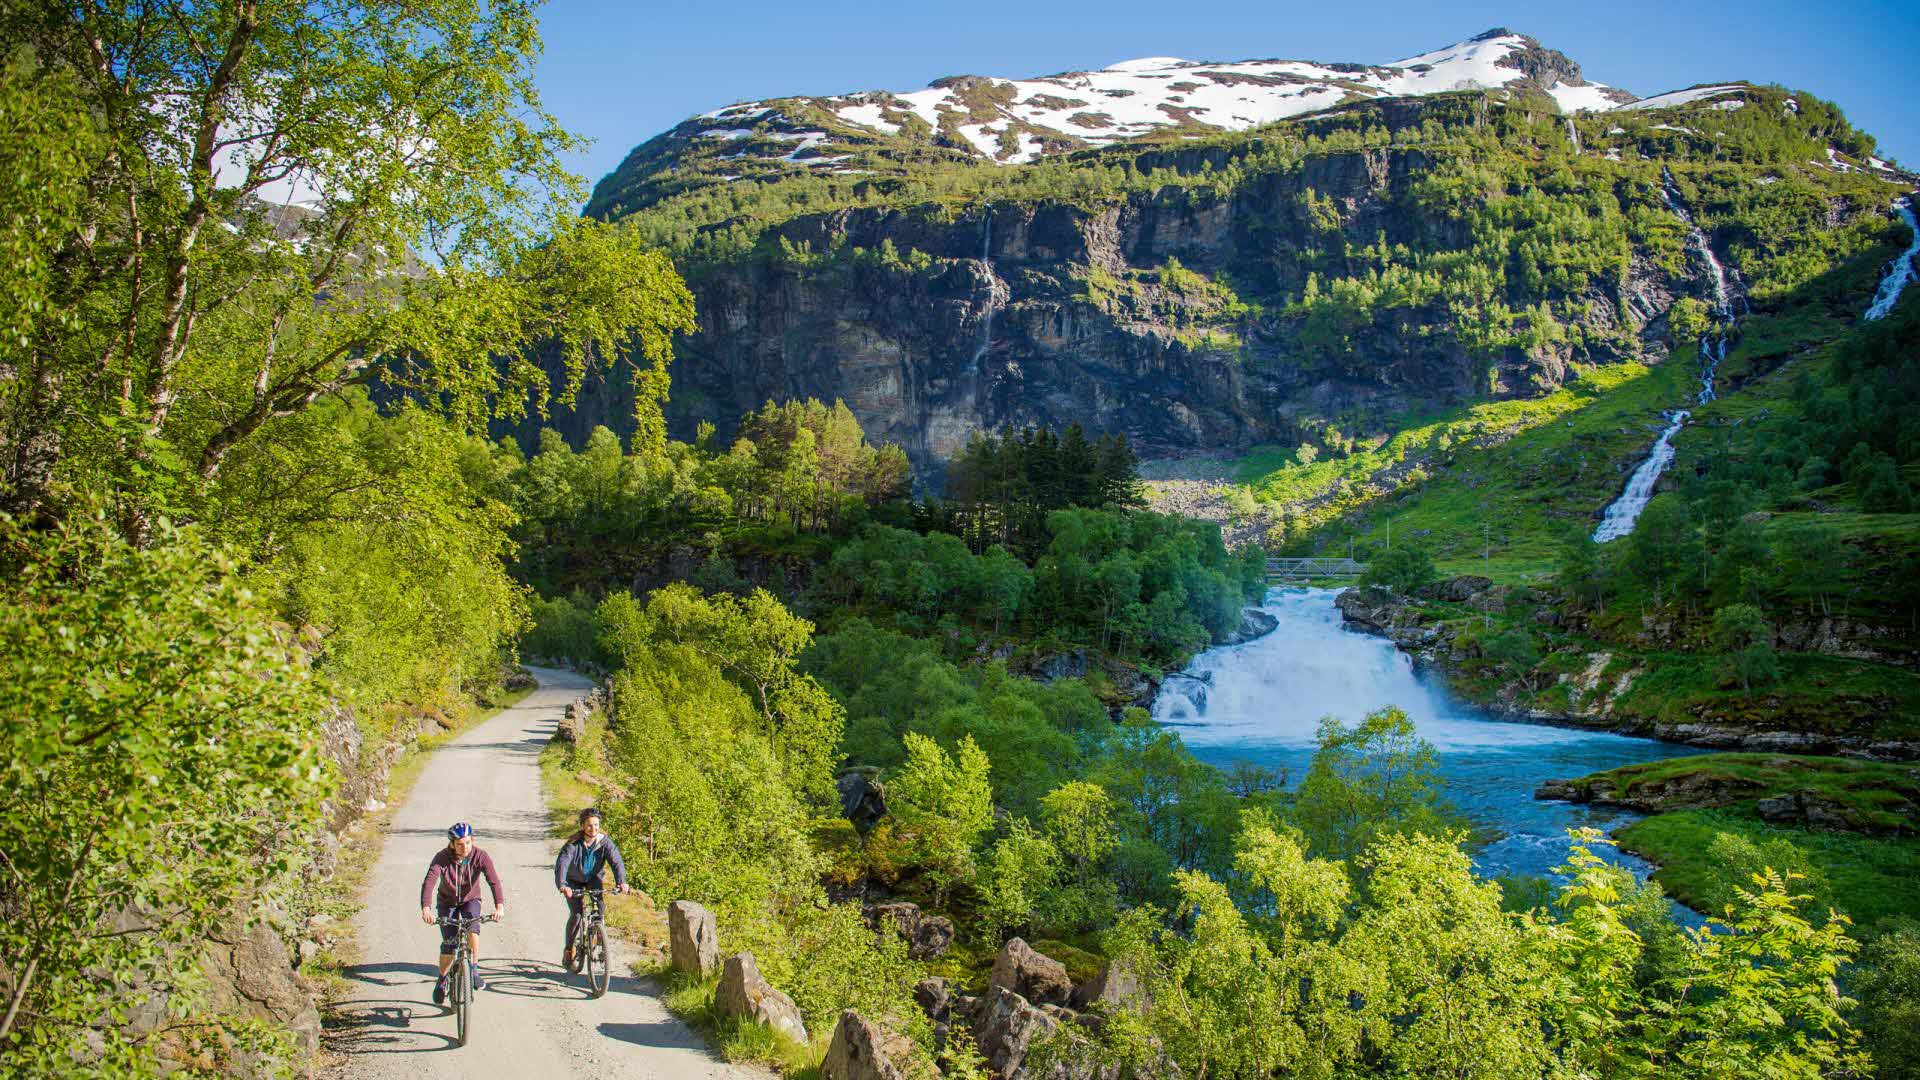 Two cyclists by the river in Flåmsdalen